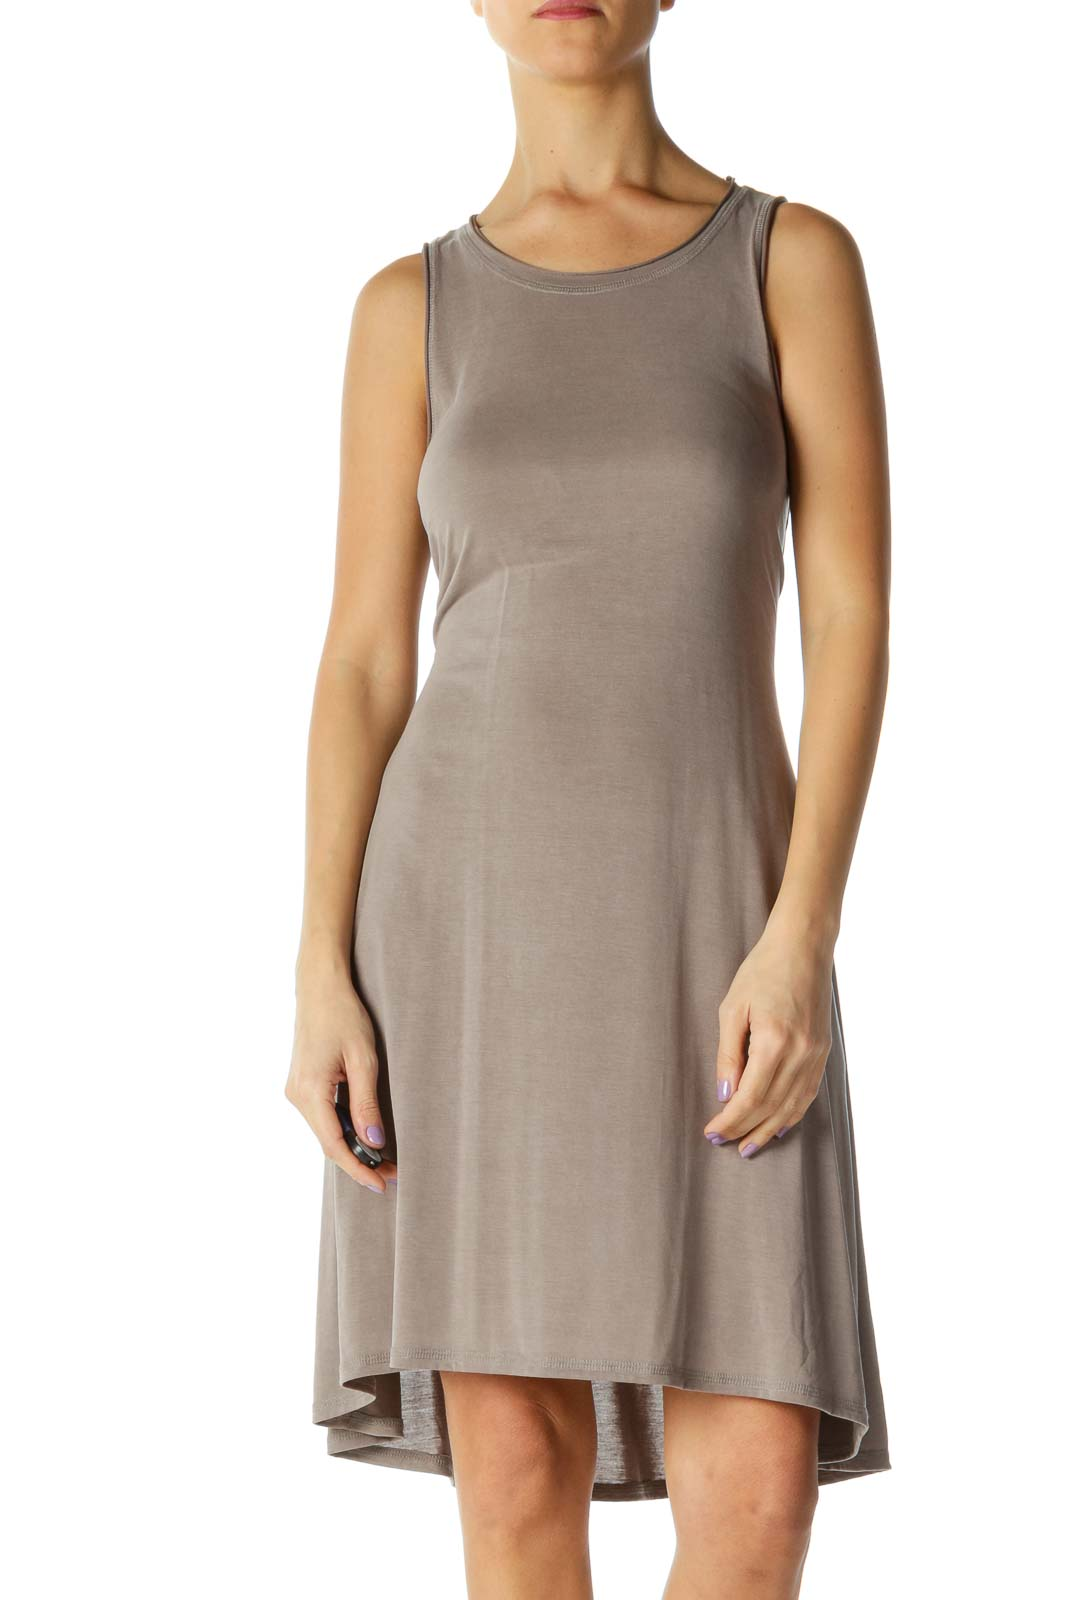 Brown Solid Casual A-Line Dress